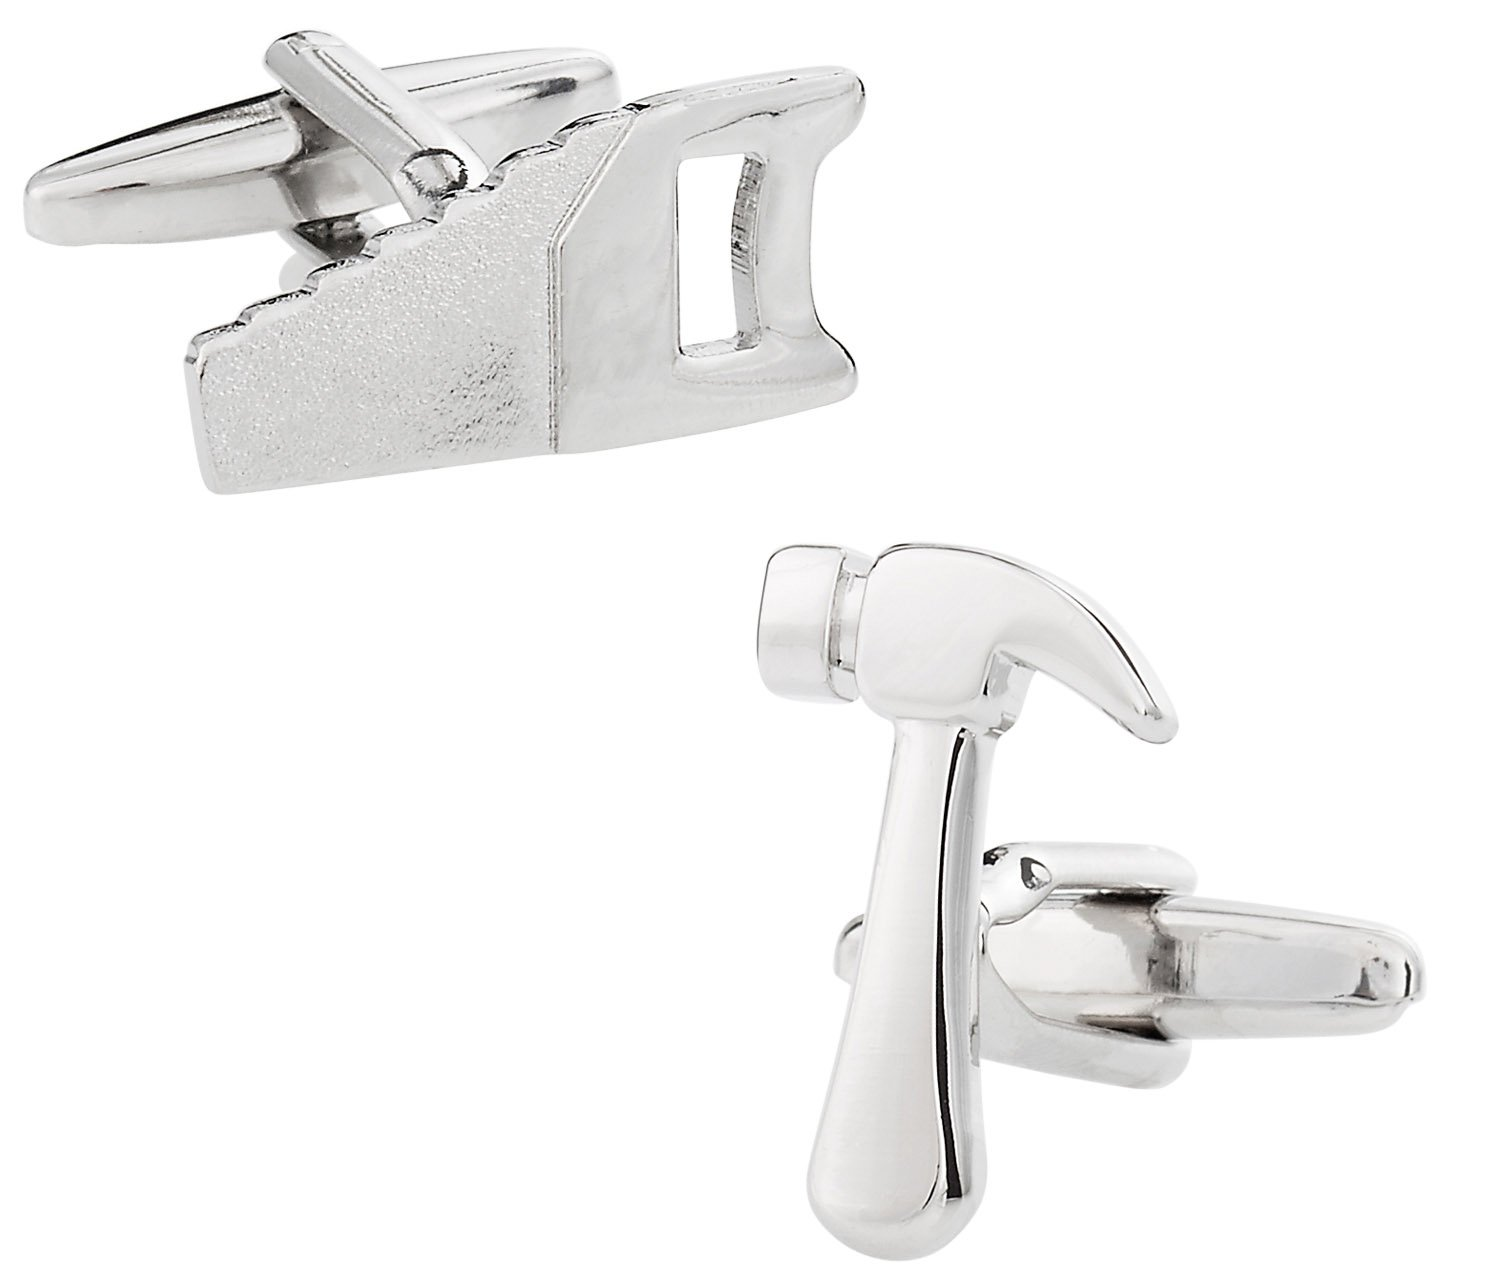 Cuff-Daddy Construction Hammer Saw Cufflinks for Carpenters by Cuff-Daddy (Image #3)